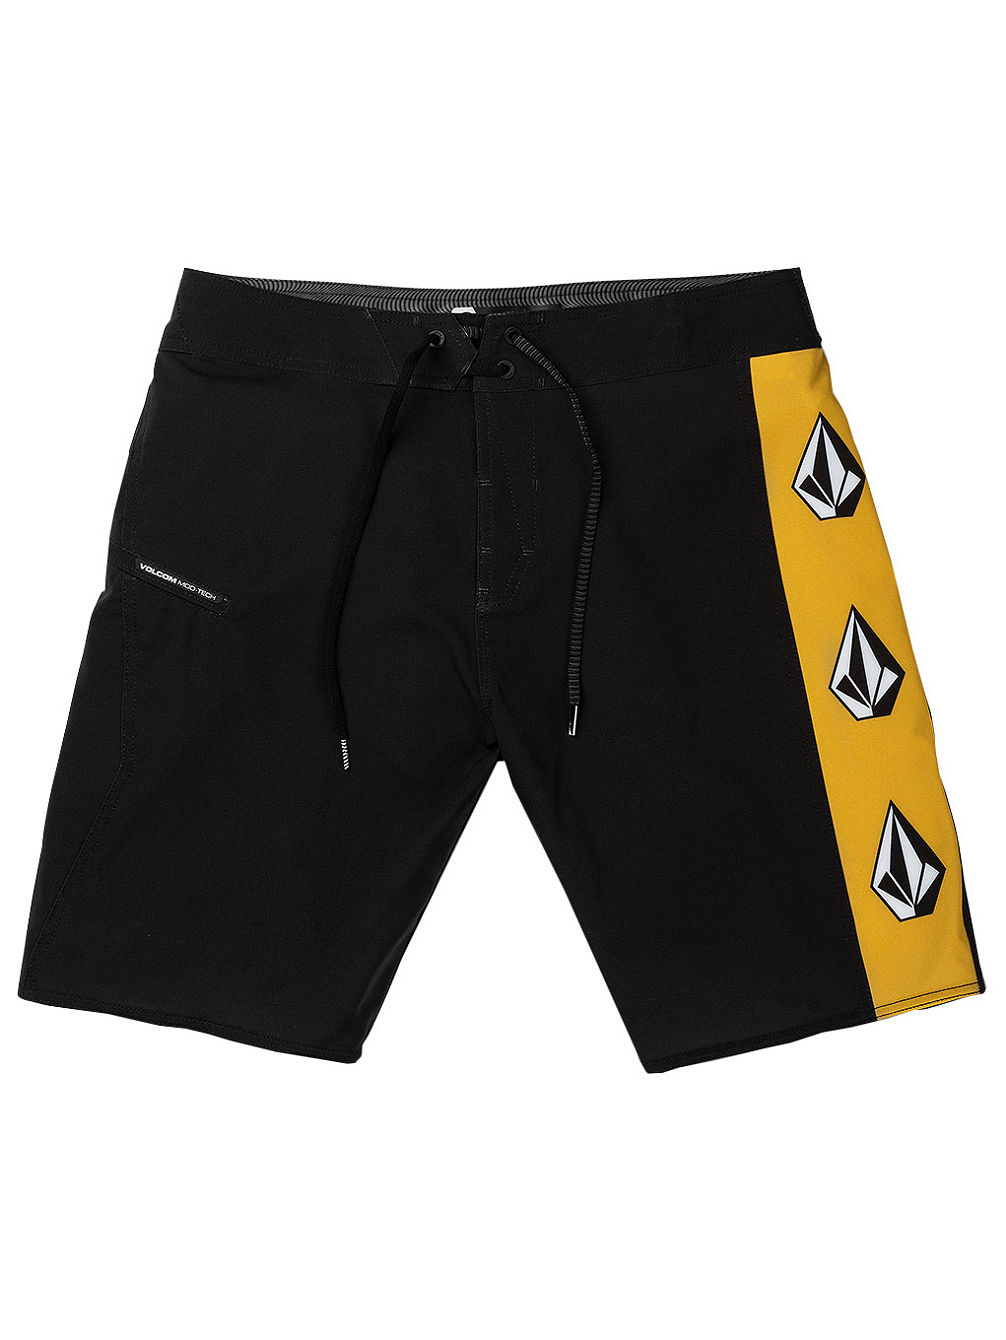 "Deadly Stones Mod 20"" Boardshorts"